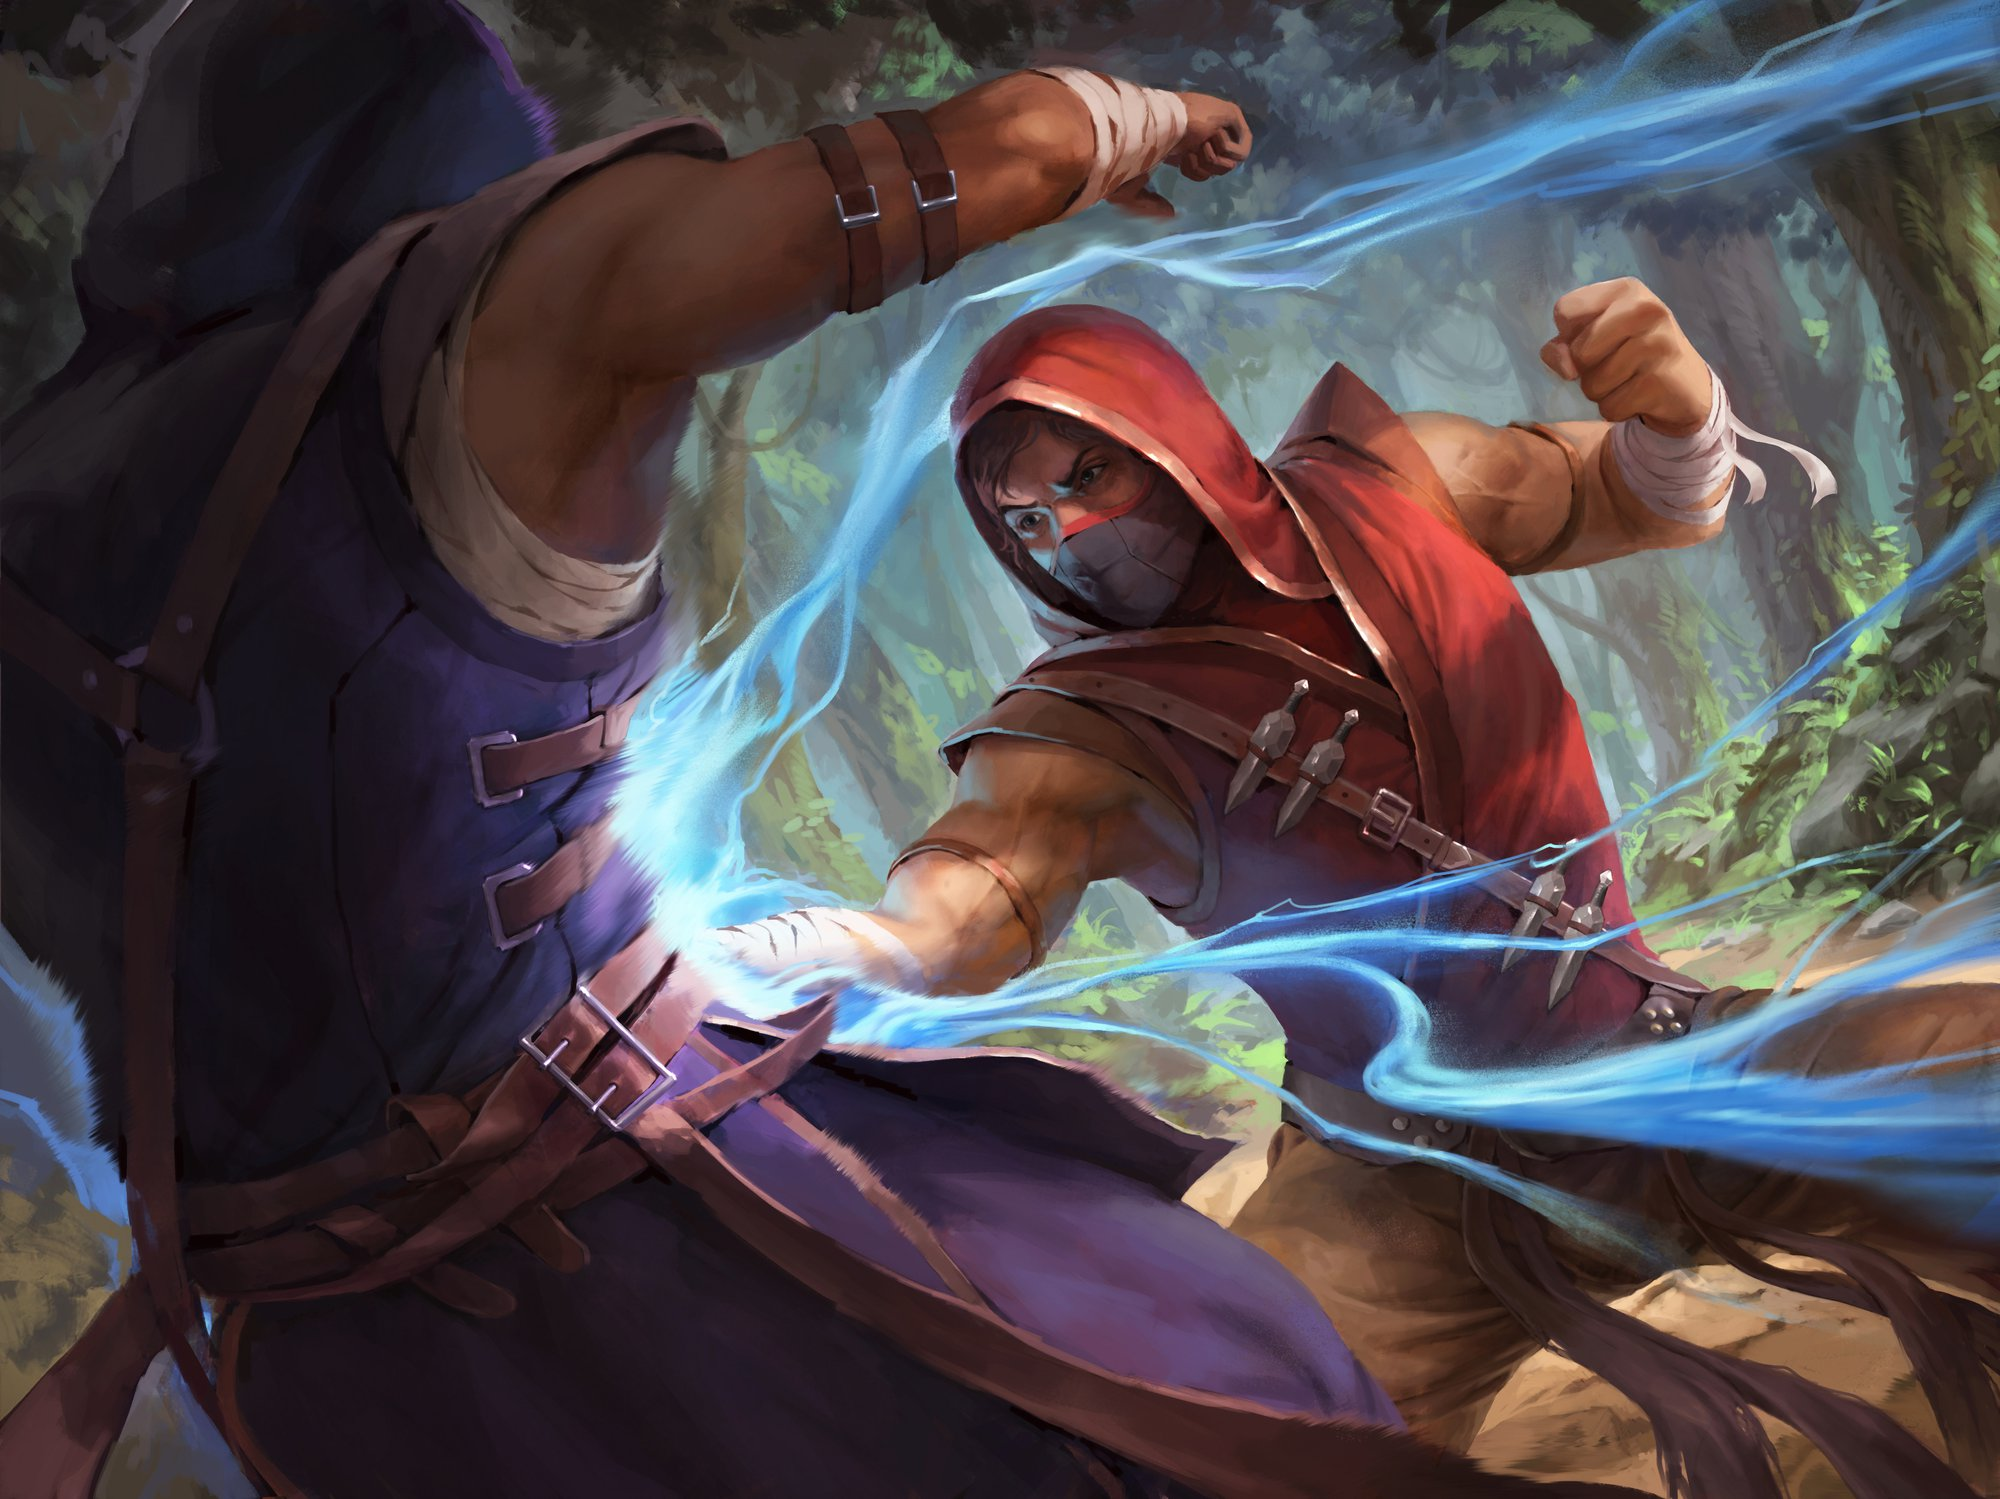 Open the Center © 2019 Legend Story Studios. Illustrated by Fajareka Setiawan.